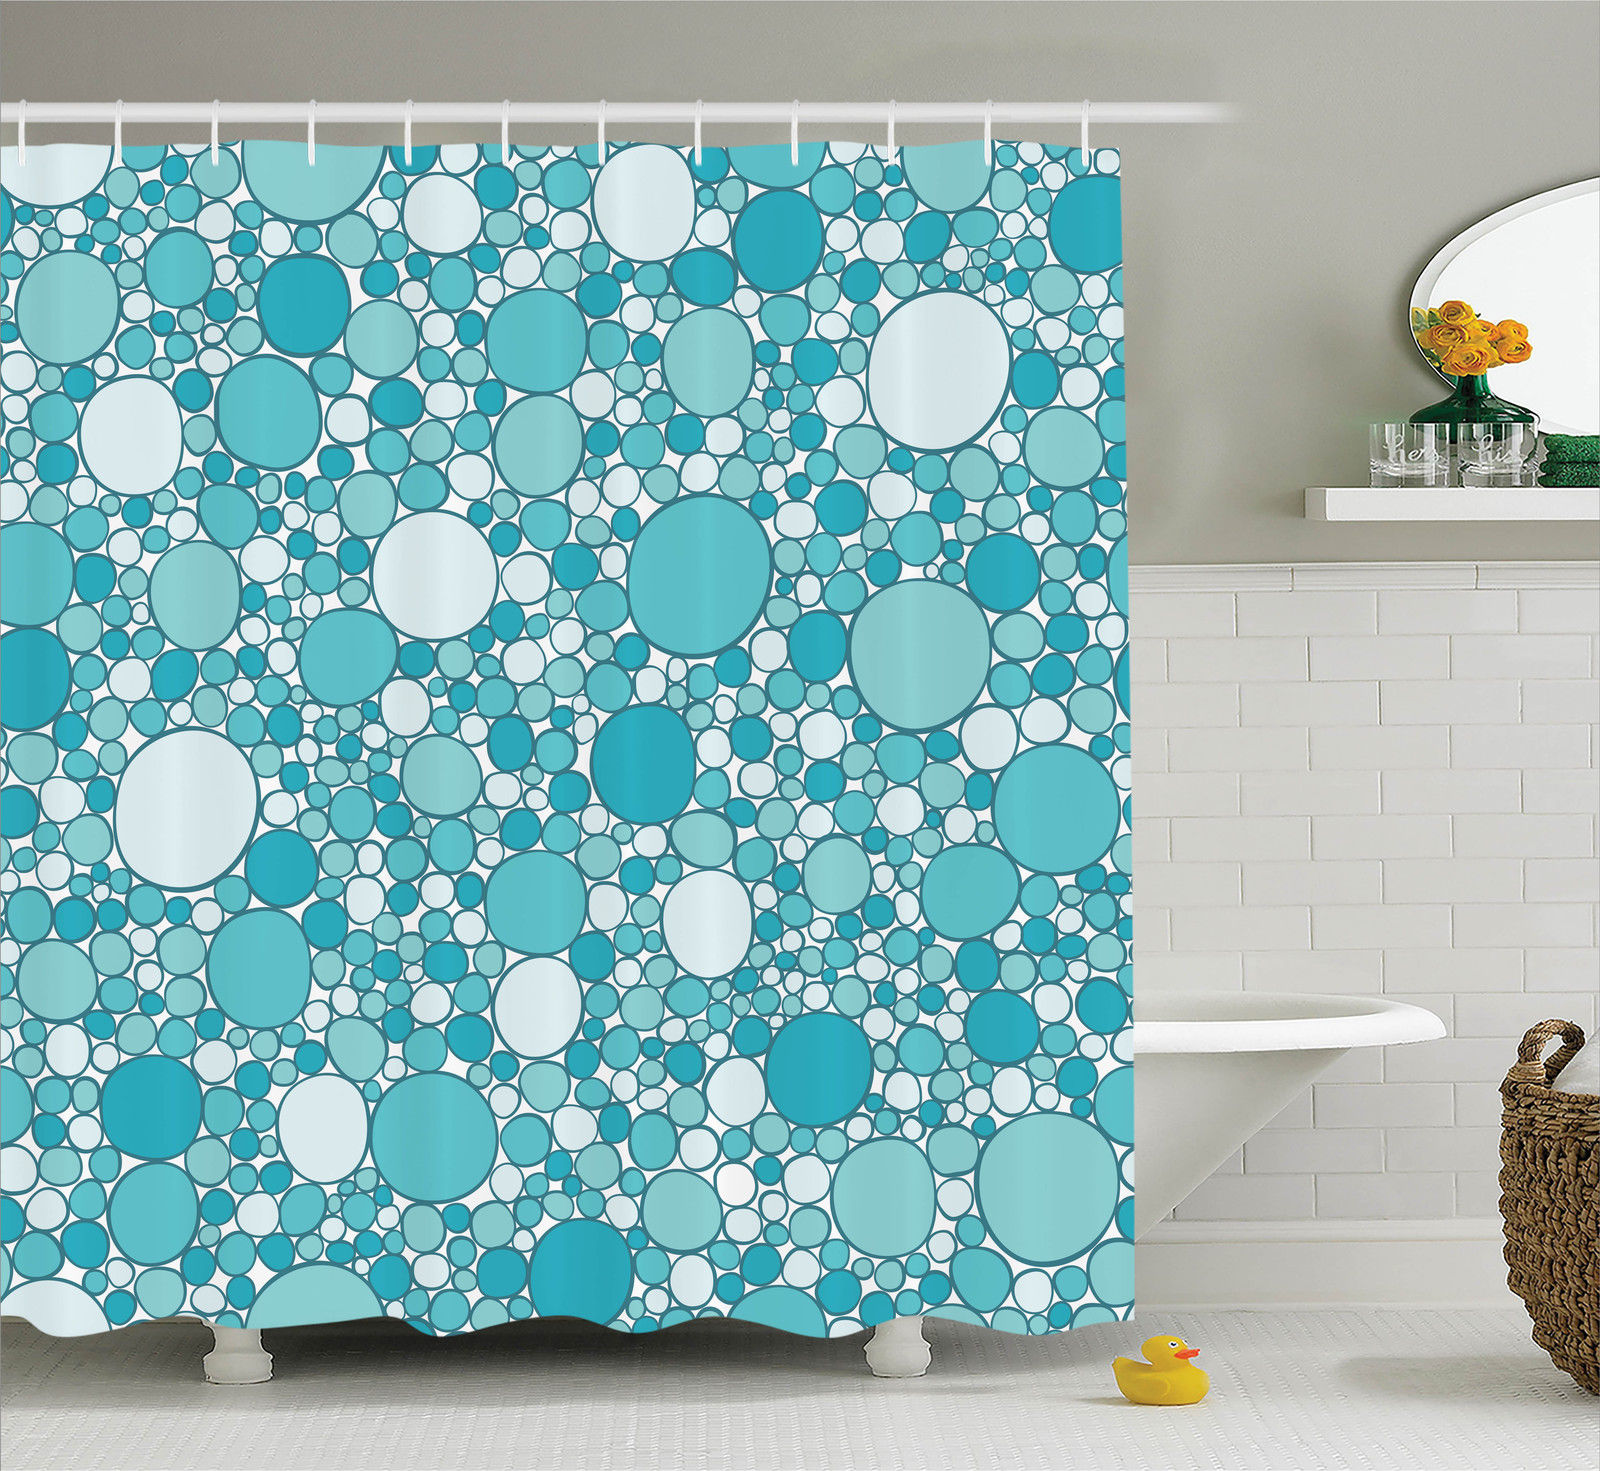 House Decor  Abstract Pattern With Bubbles In Different Sizes Modern Stylish Trendy, Bathroom Accessories, 69W X 84L Inches Extra Long, By Ambesonne